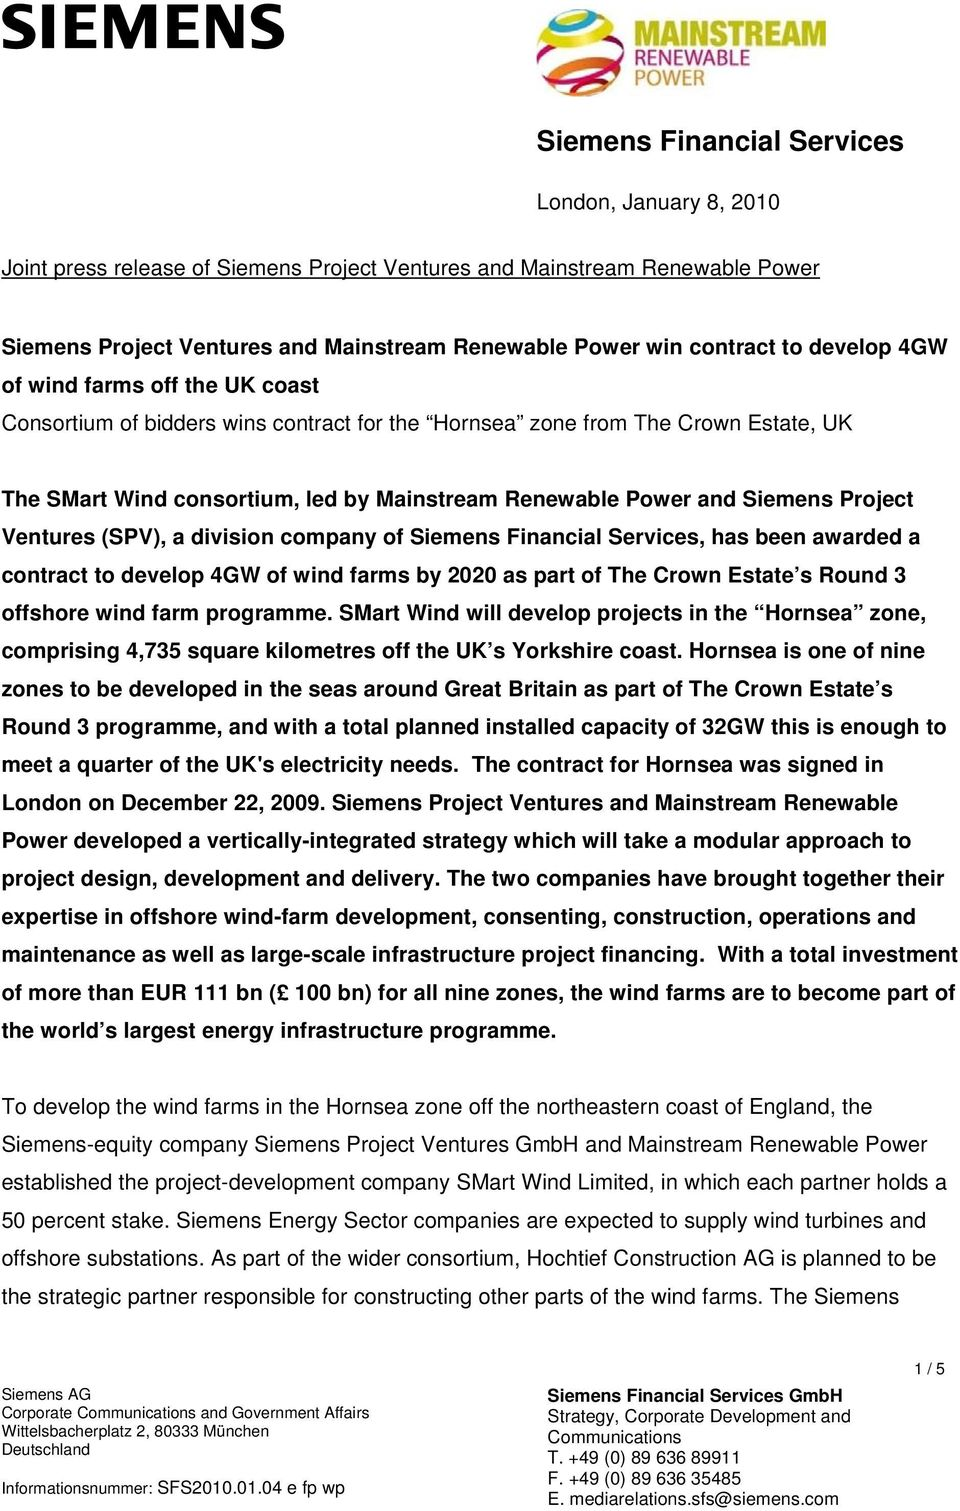 Siemens Project Ventures (SPV), a division company of Siemens Financial Services, has been awarded a contract to develop 4GW of wind farms by 2020 as part of The Crown Estate s Round 3 offshore wind